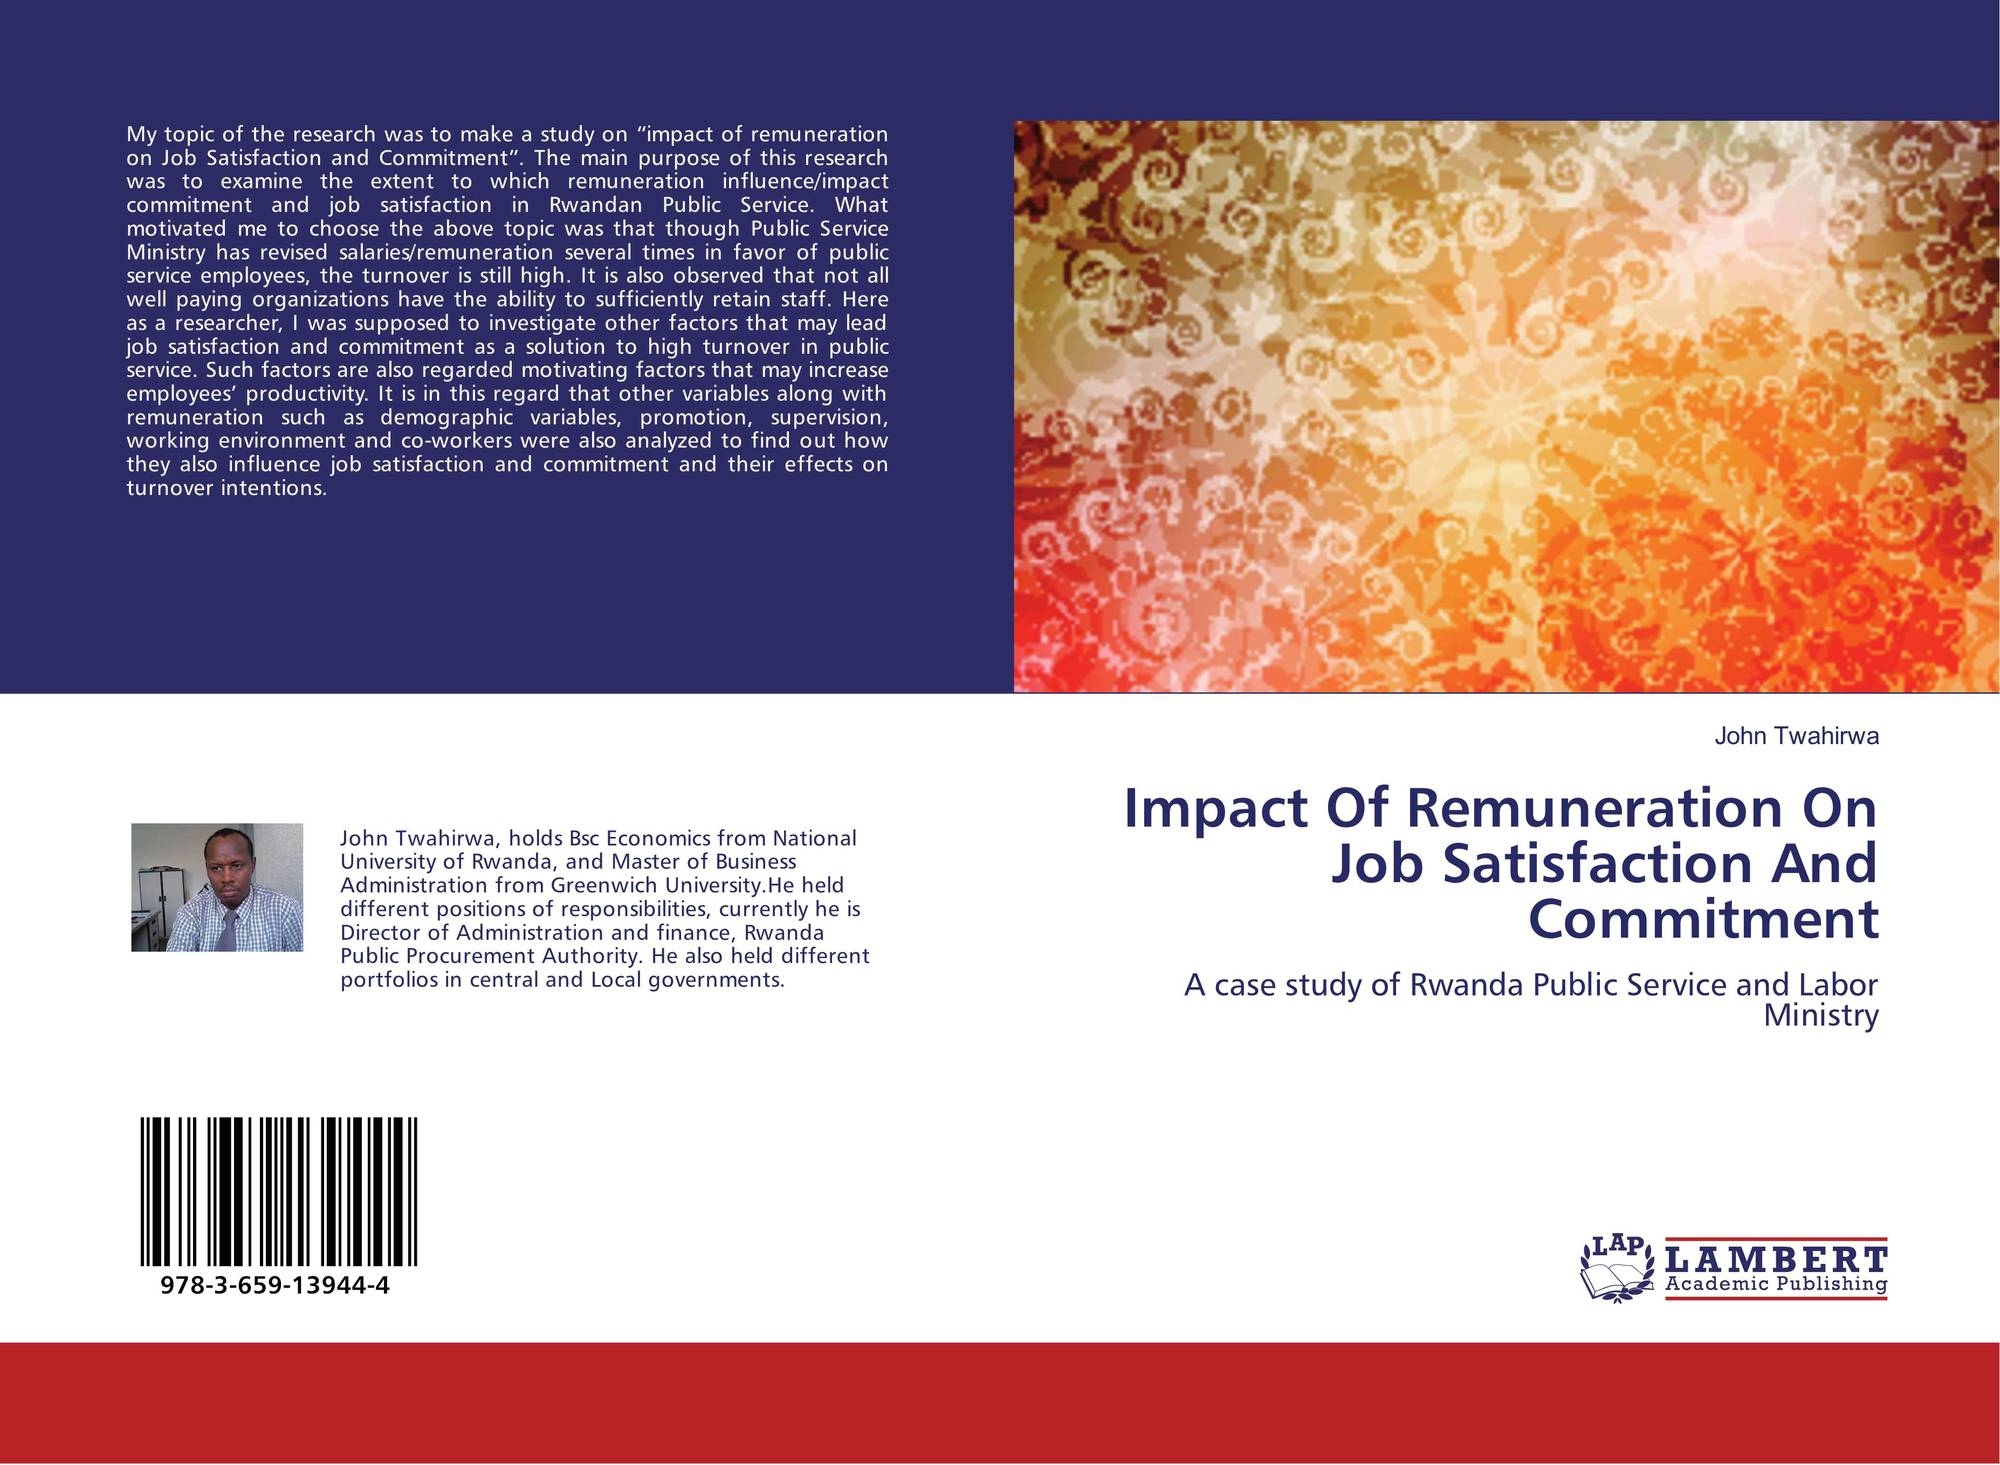 reward impacts on job satisfaction Job satisfaction is inclined by rewards and motivation of employees (spector1985)amabile et al (1994) also described that motivation is effected by reward which is correlated with job satisfaction.